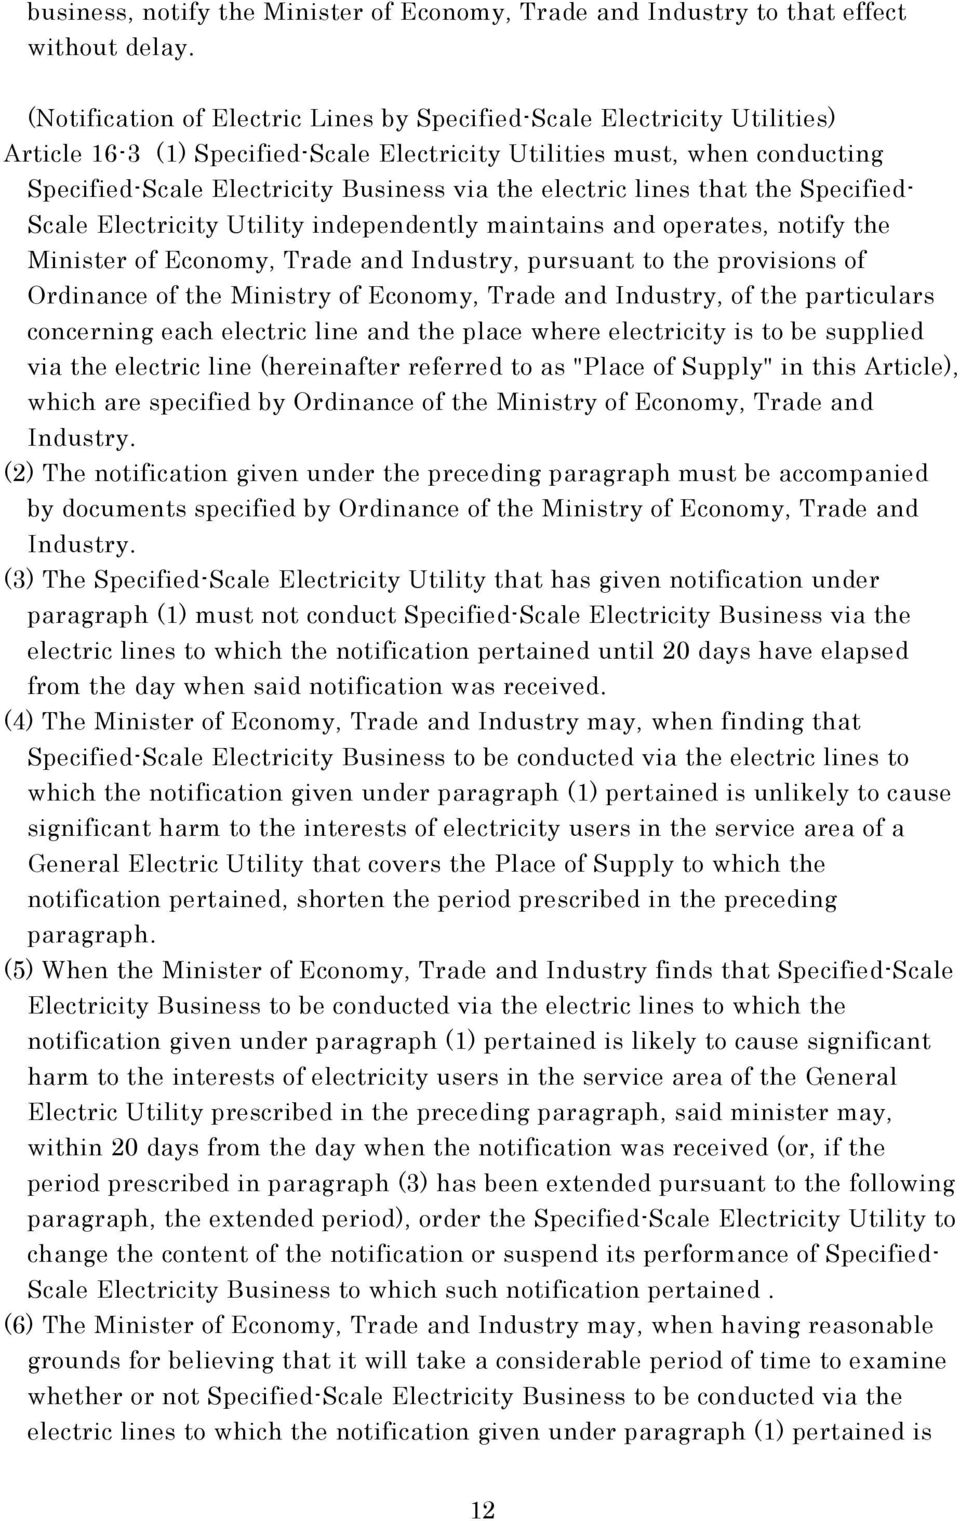 electric lines that the Specified- Scale Electricity Utility independently maintains and operates, notify the Minister of Economy, Trade and Industry, pursuant to the provisions of Ordinance of the